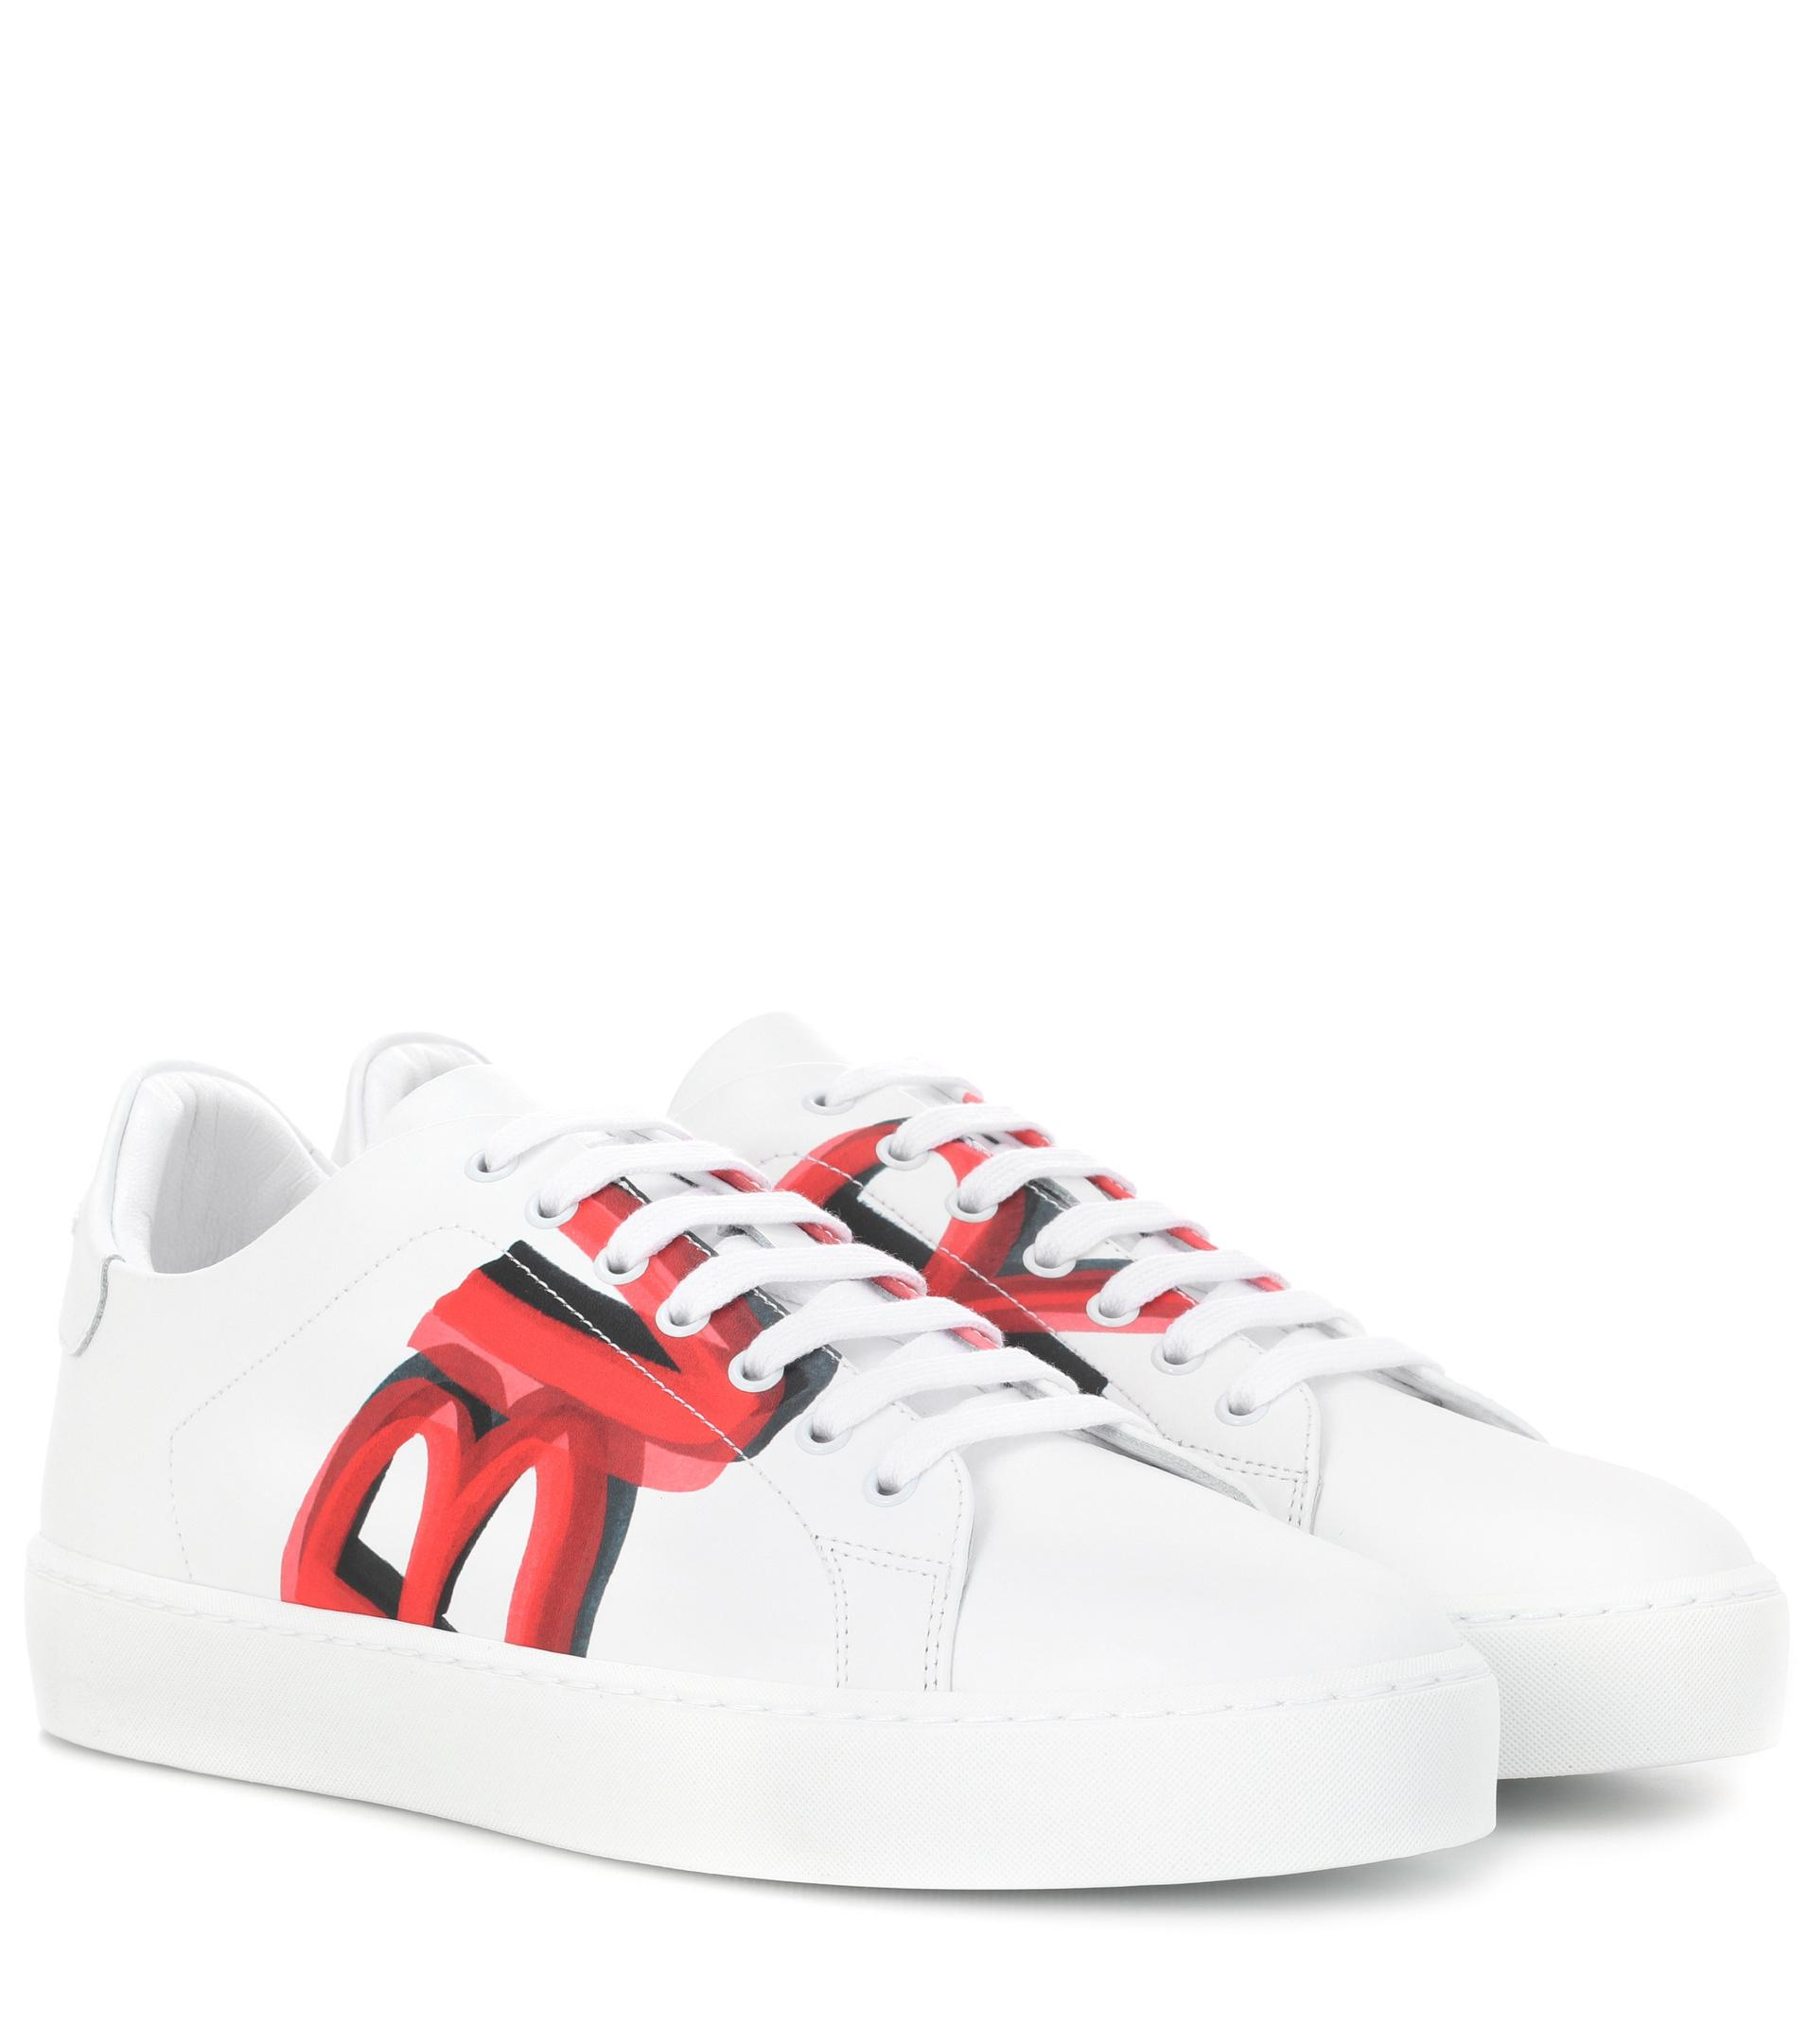 Image result for burberry sneakers women graffiti white d4adca23a